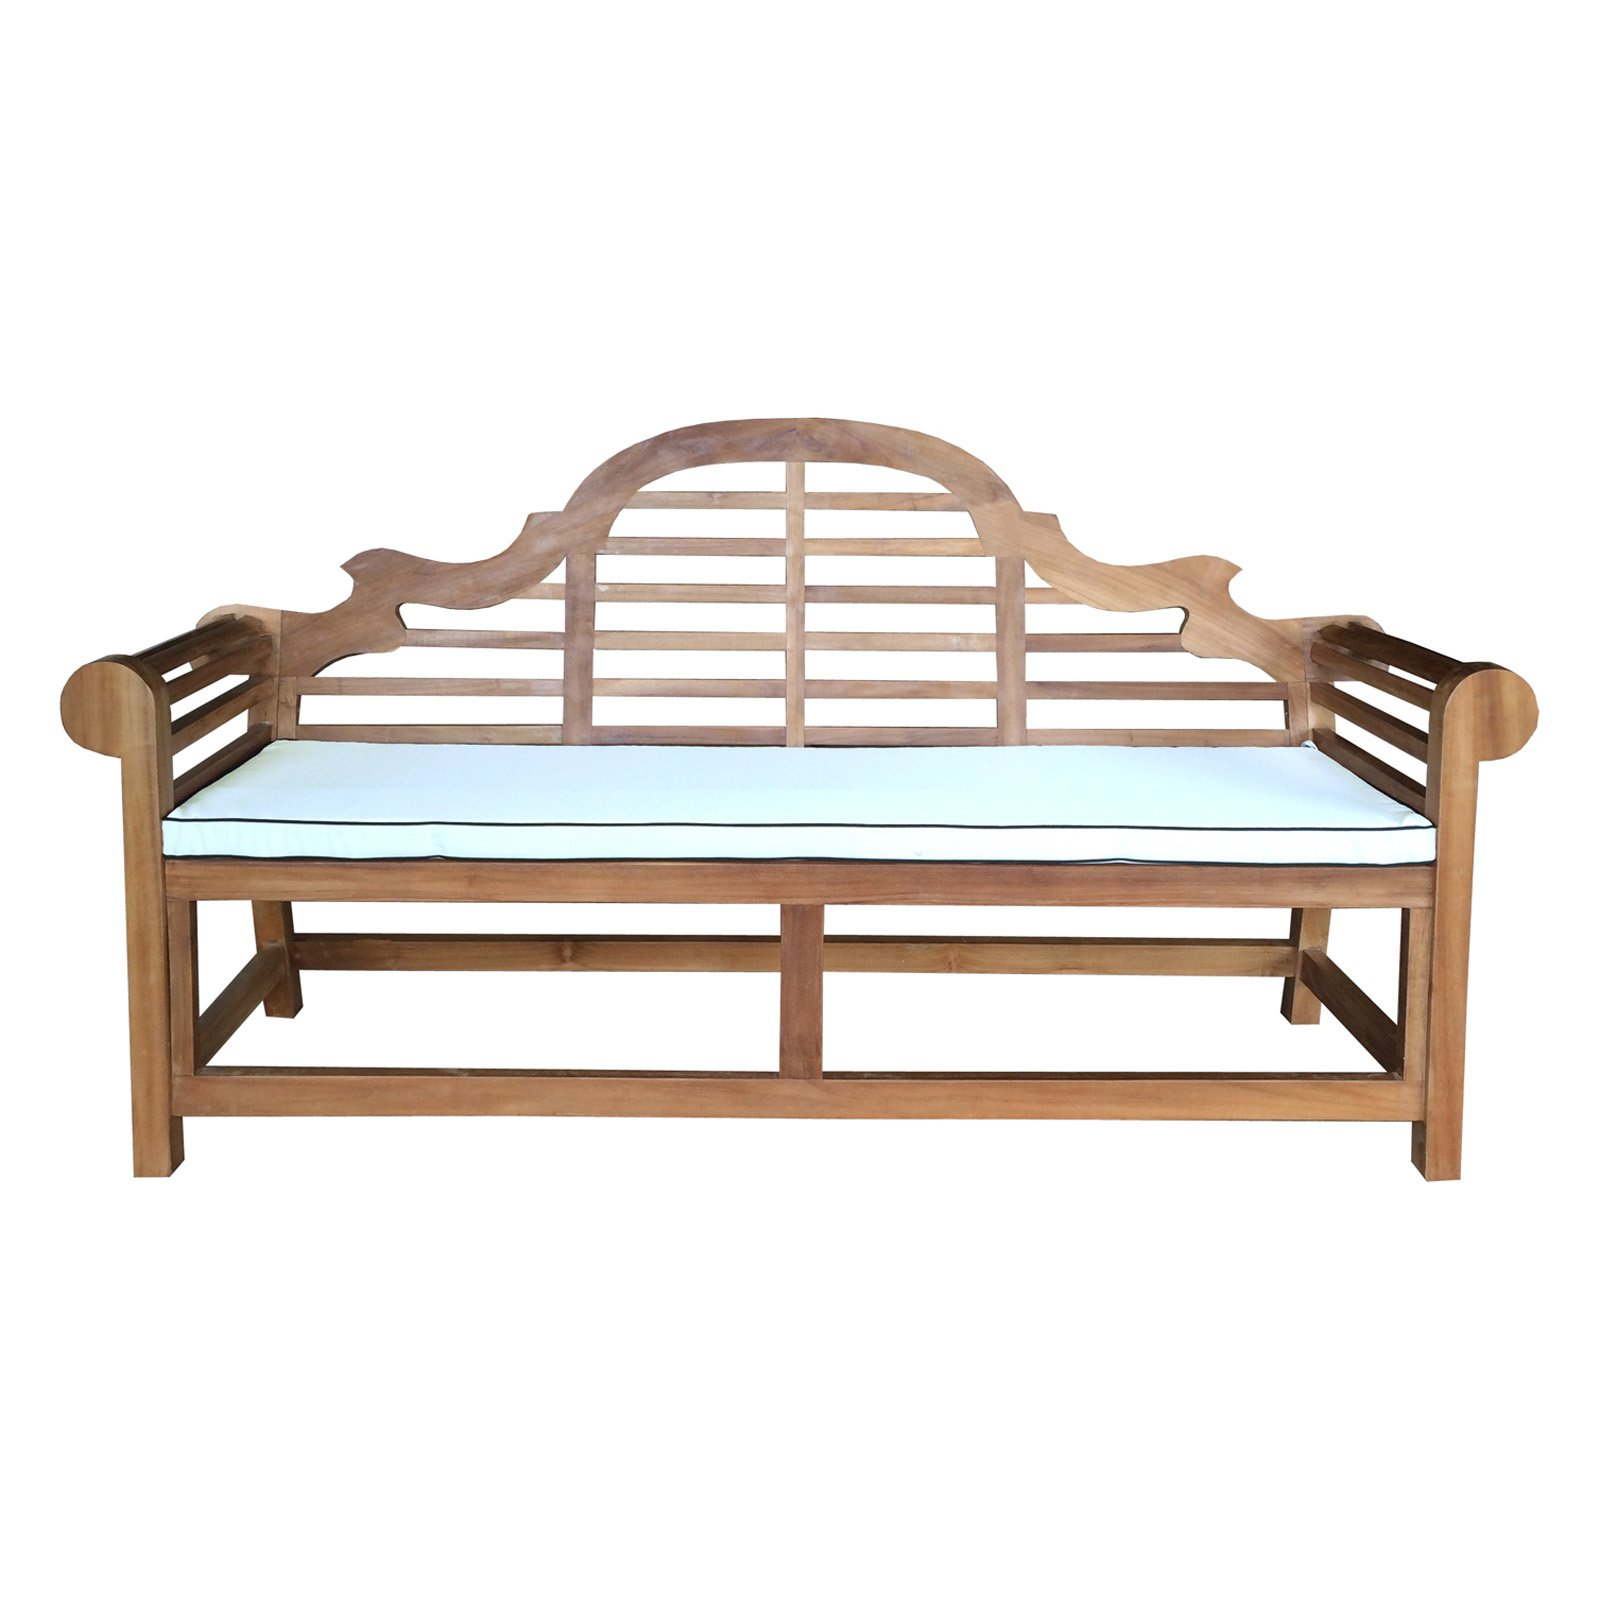 Chic Teak Lutyens Outdoor Bench Cushion by